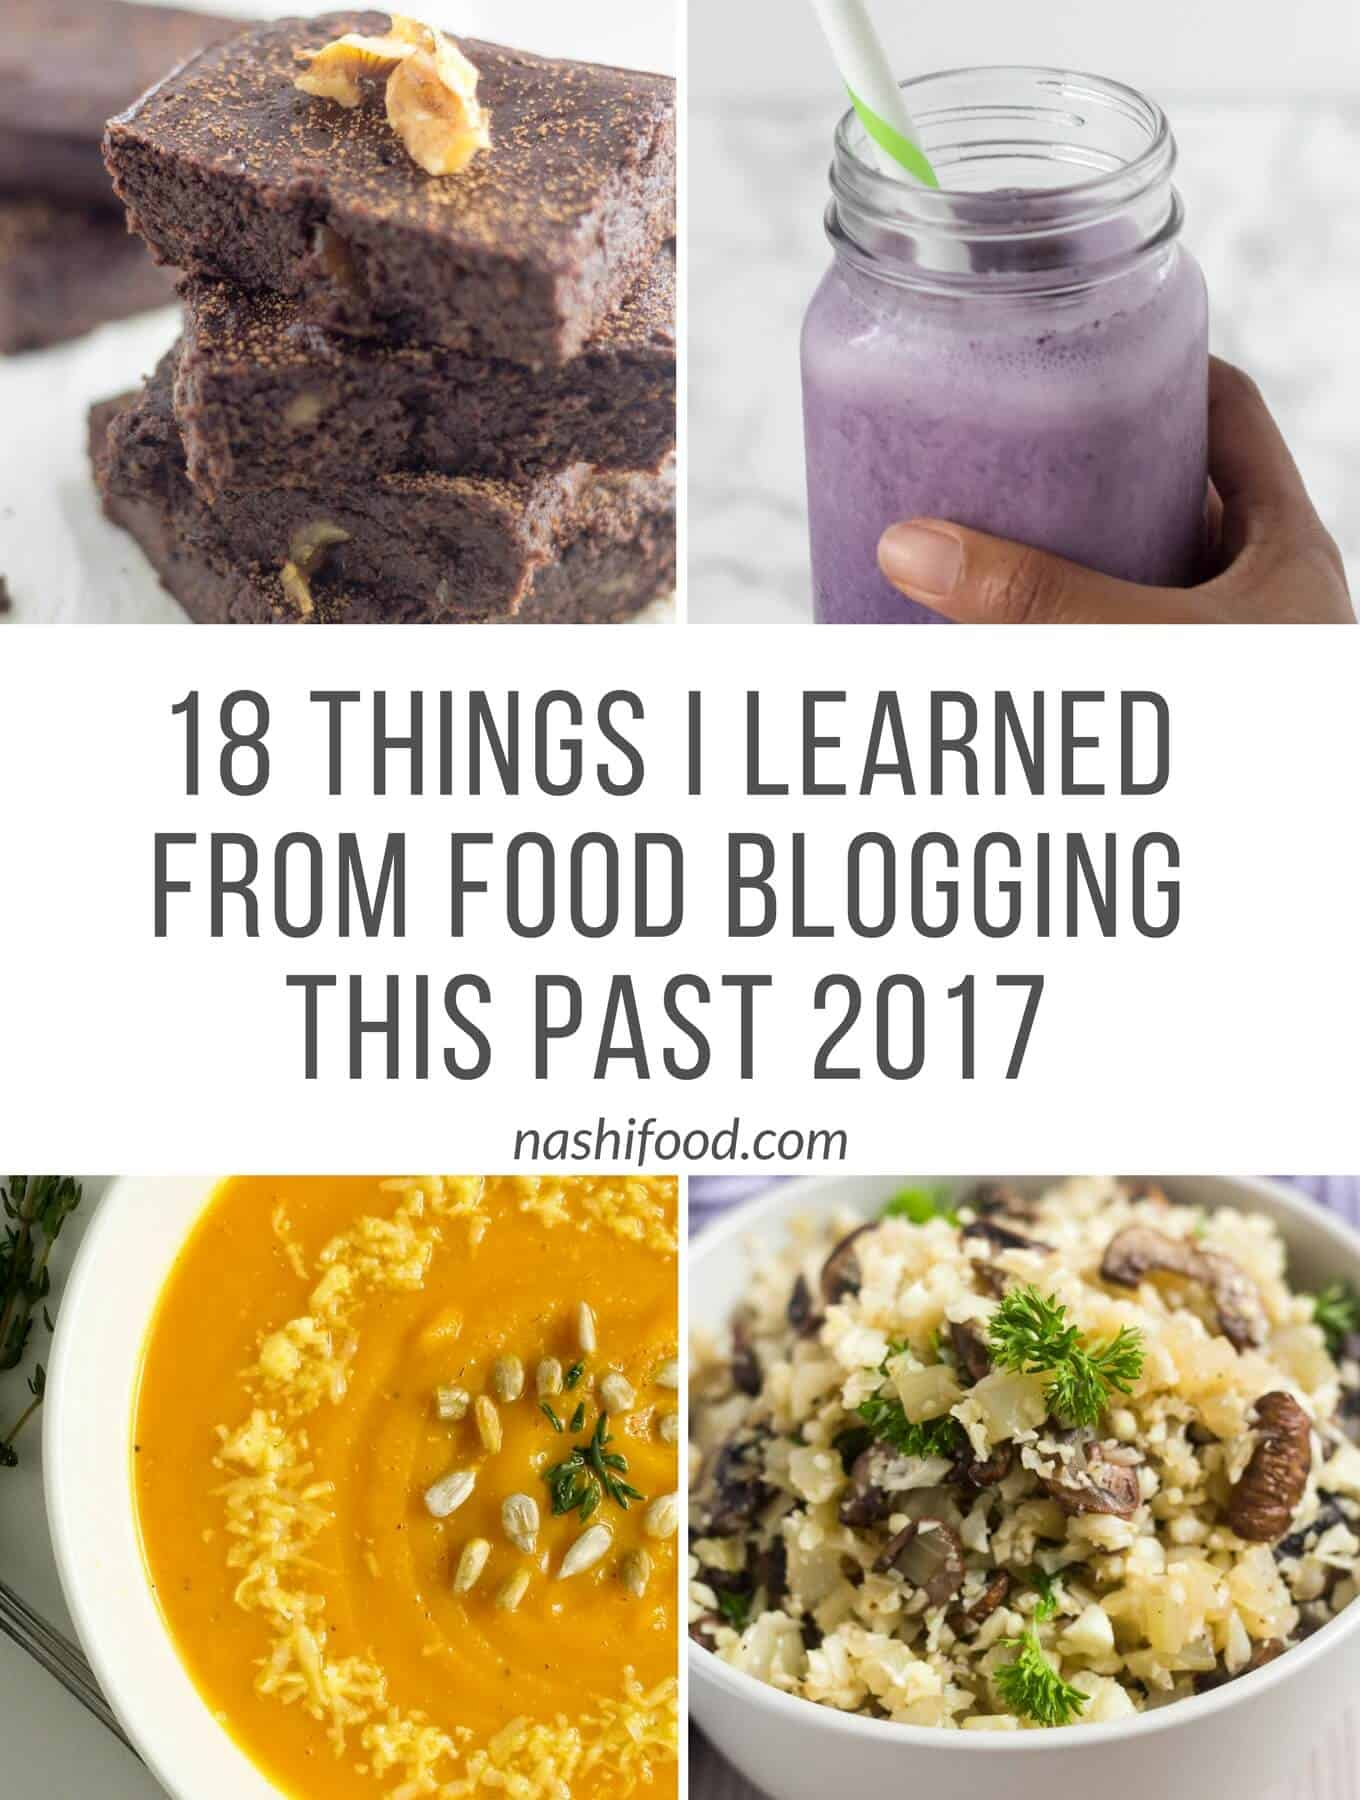 4 food images (a brownie, a smoothie, a pumpking soupd and a mushroom cauliflower rice) with a banner in the middle that says 18 things I learned from food blogging this past 2017.